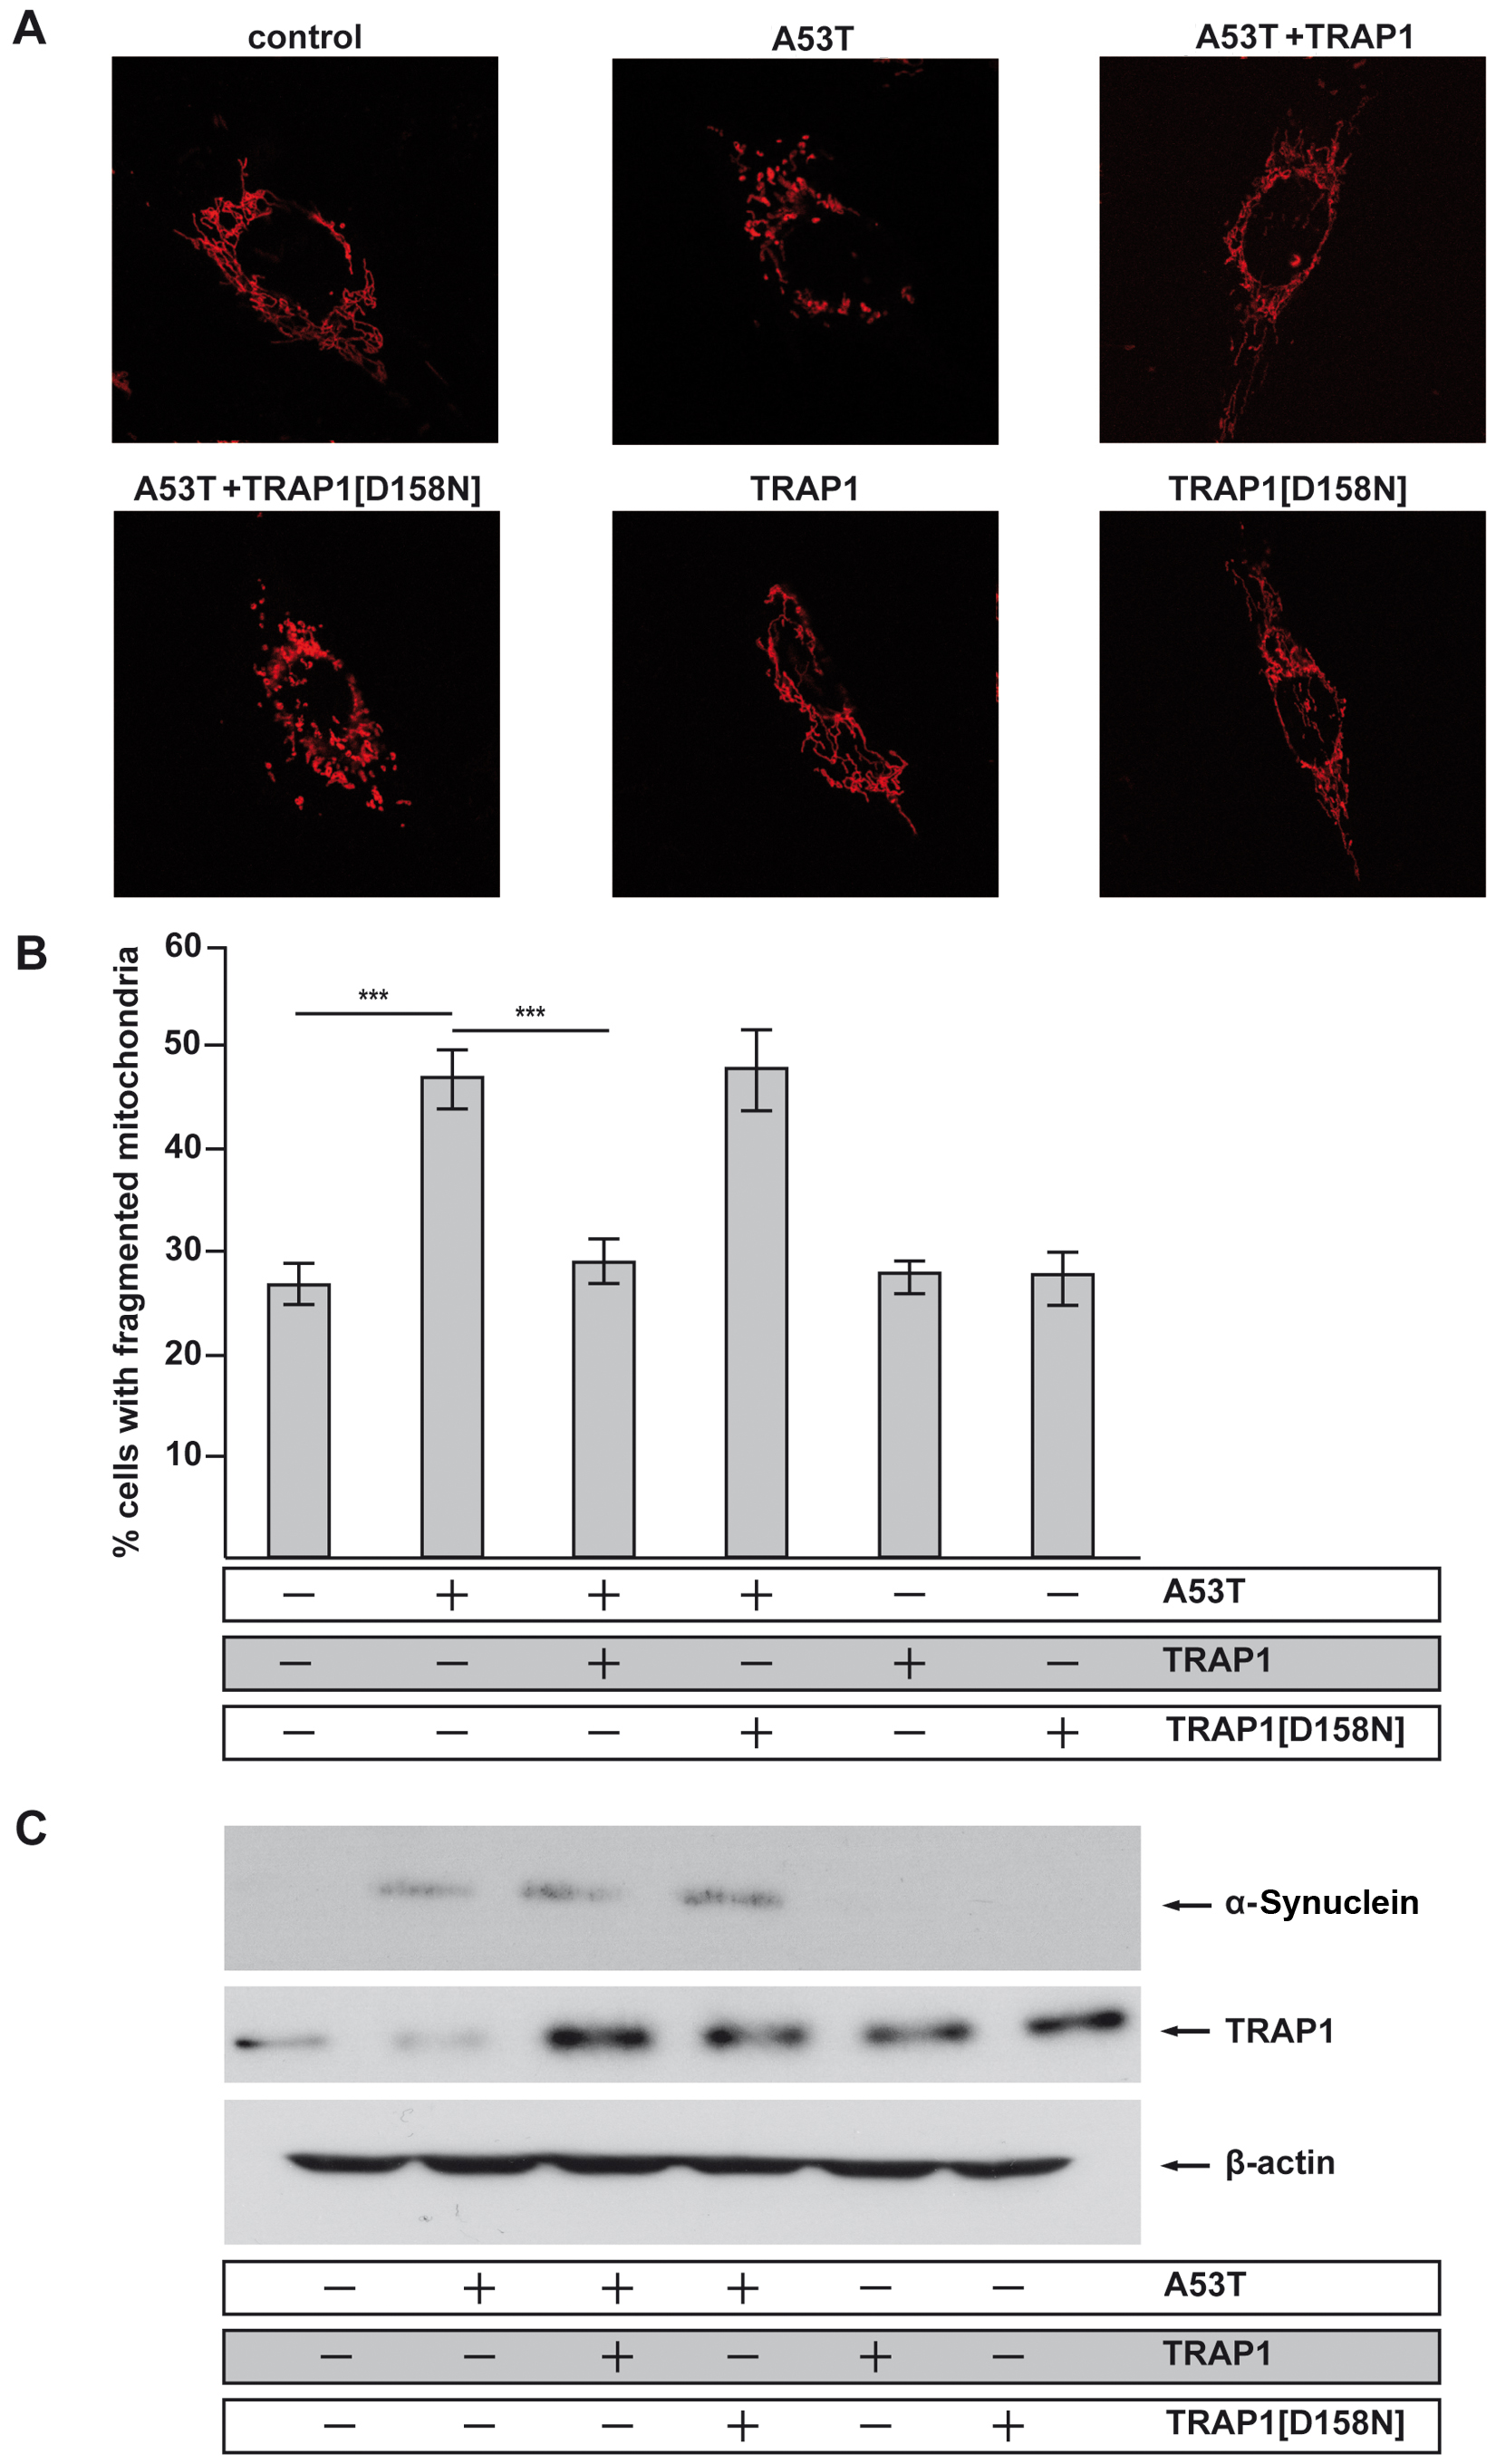 Inhibition of mitochondrial fusion by [A53T]α-Synuclein is rescued by TRAP1.